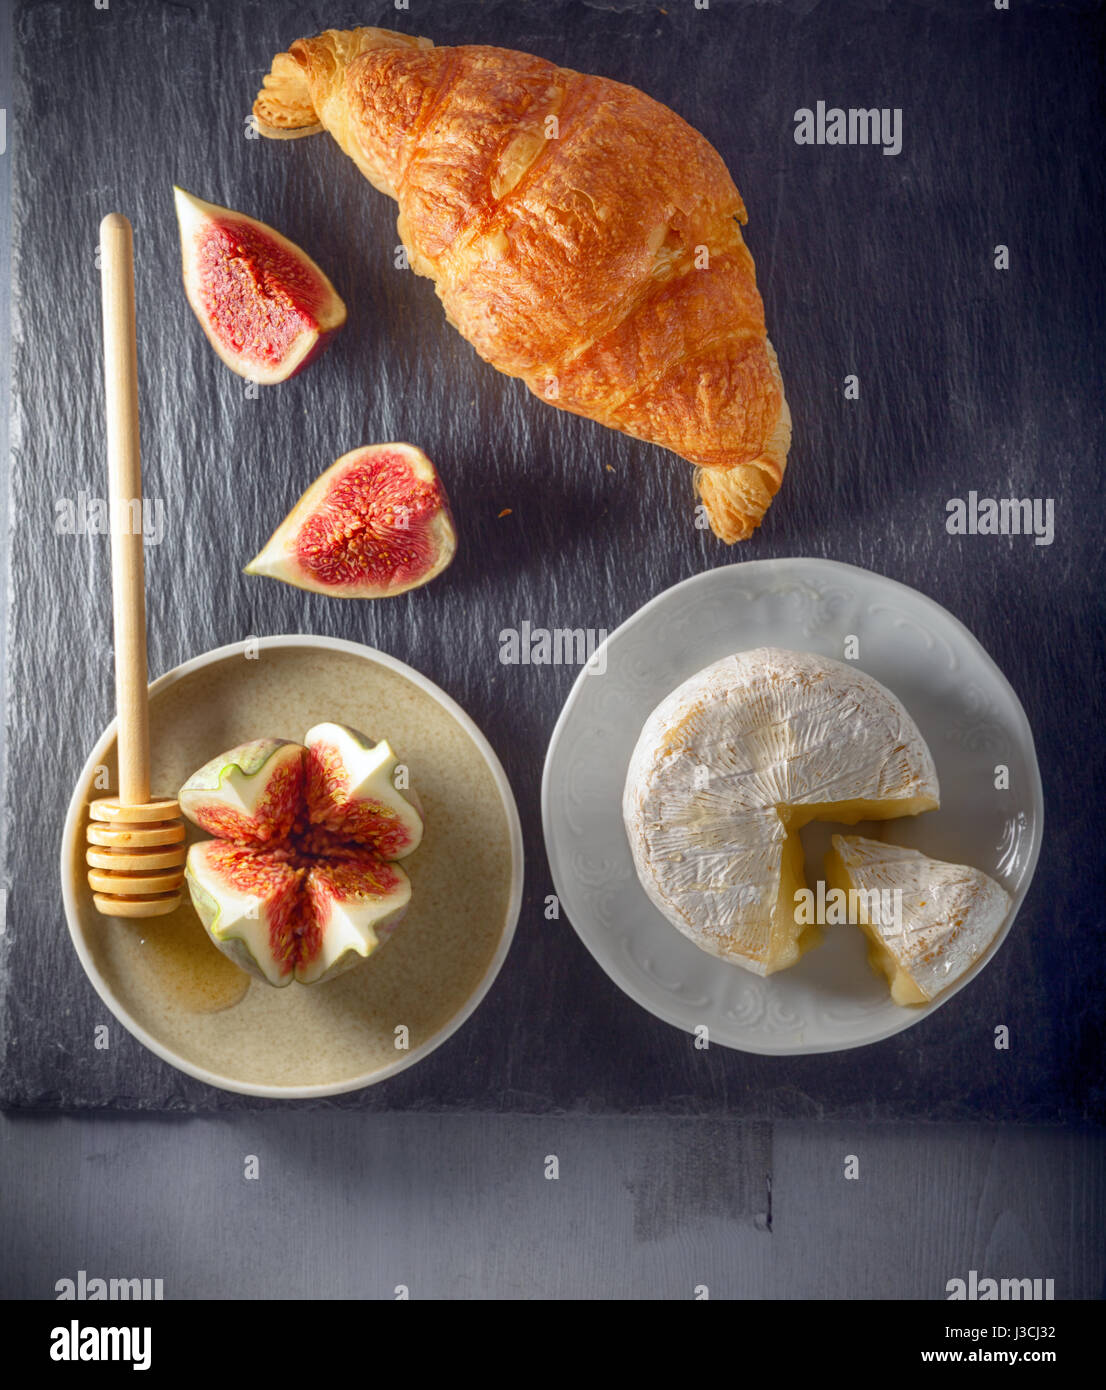 Croissant with soft cheese and figs on a stone plate - Stock Image